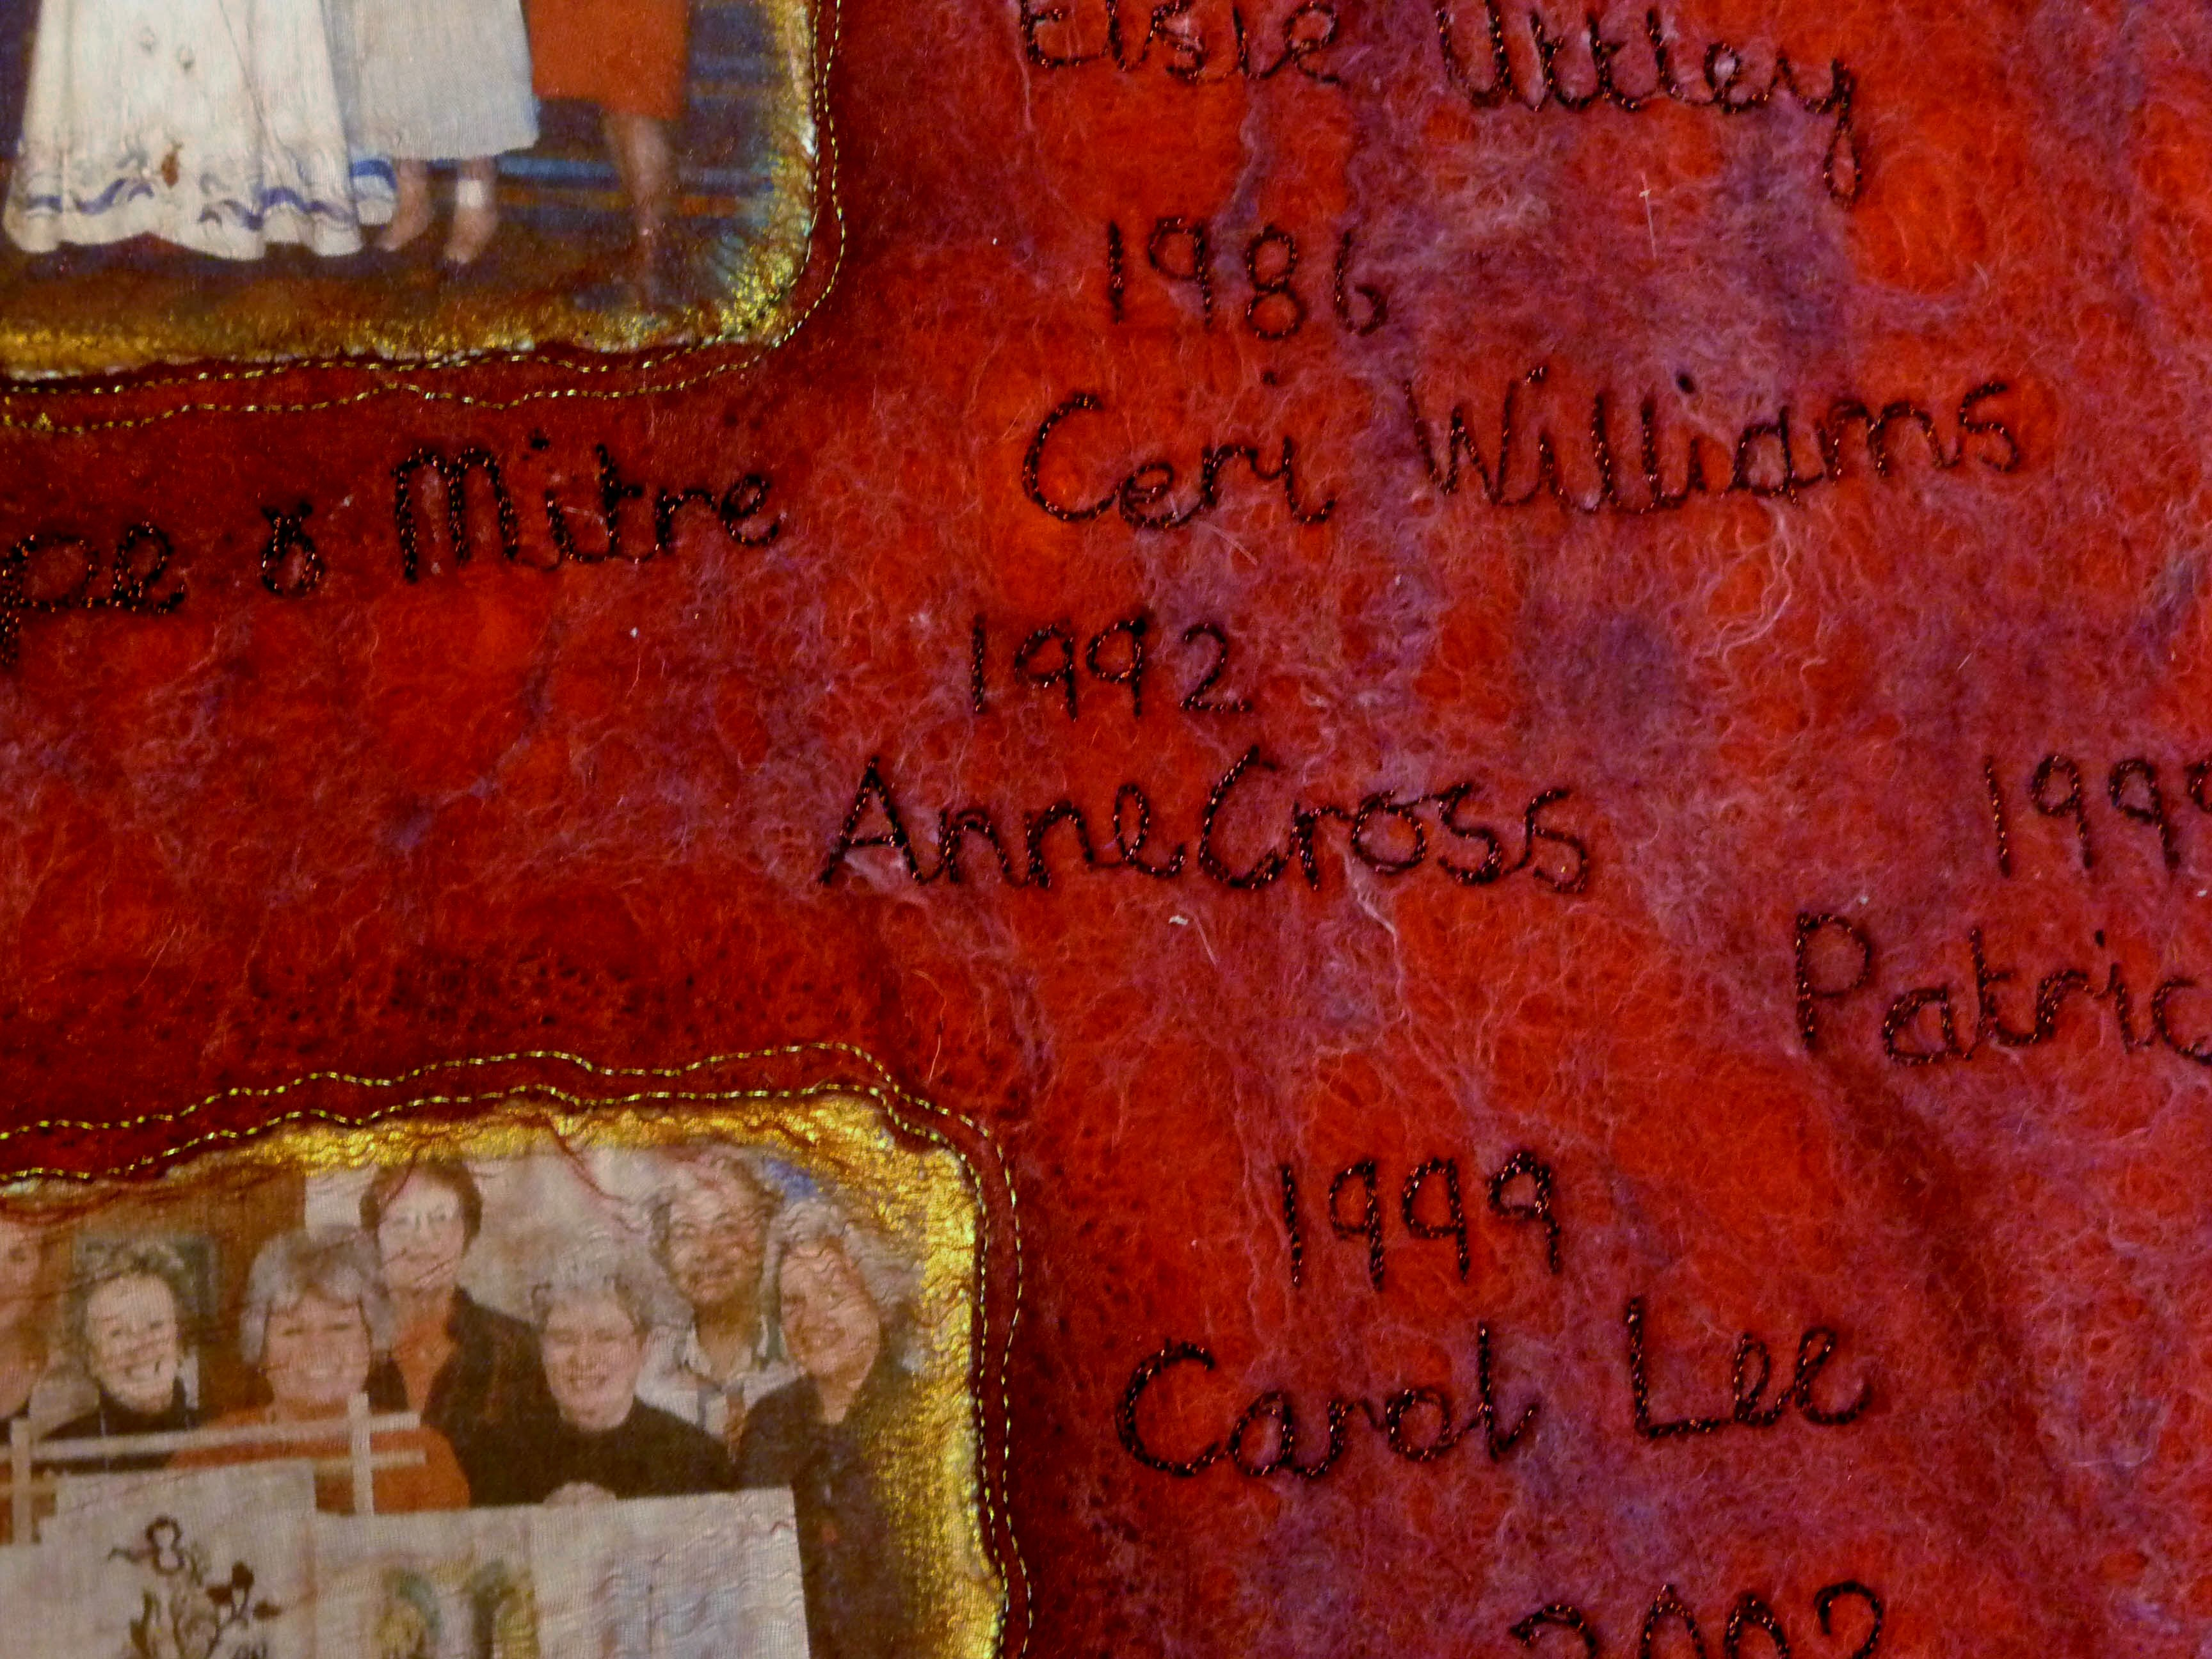 detail of RUBY REFLECTIONS by Moya McCarthy made for Rhyl EG 40th Anniversry